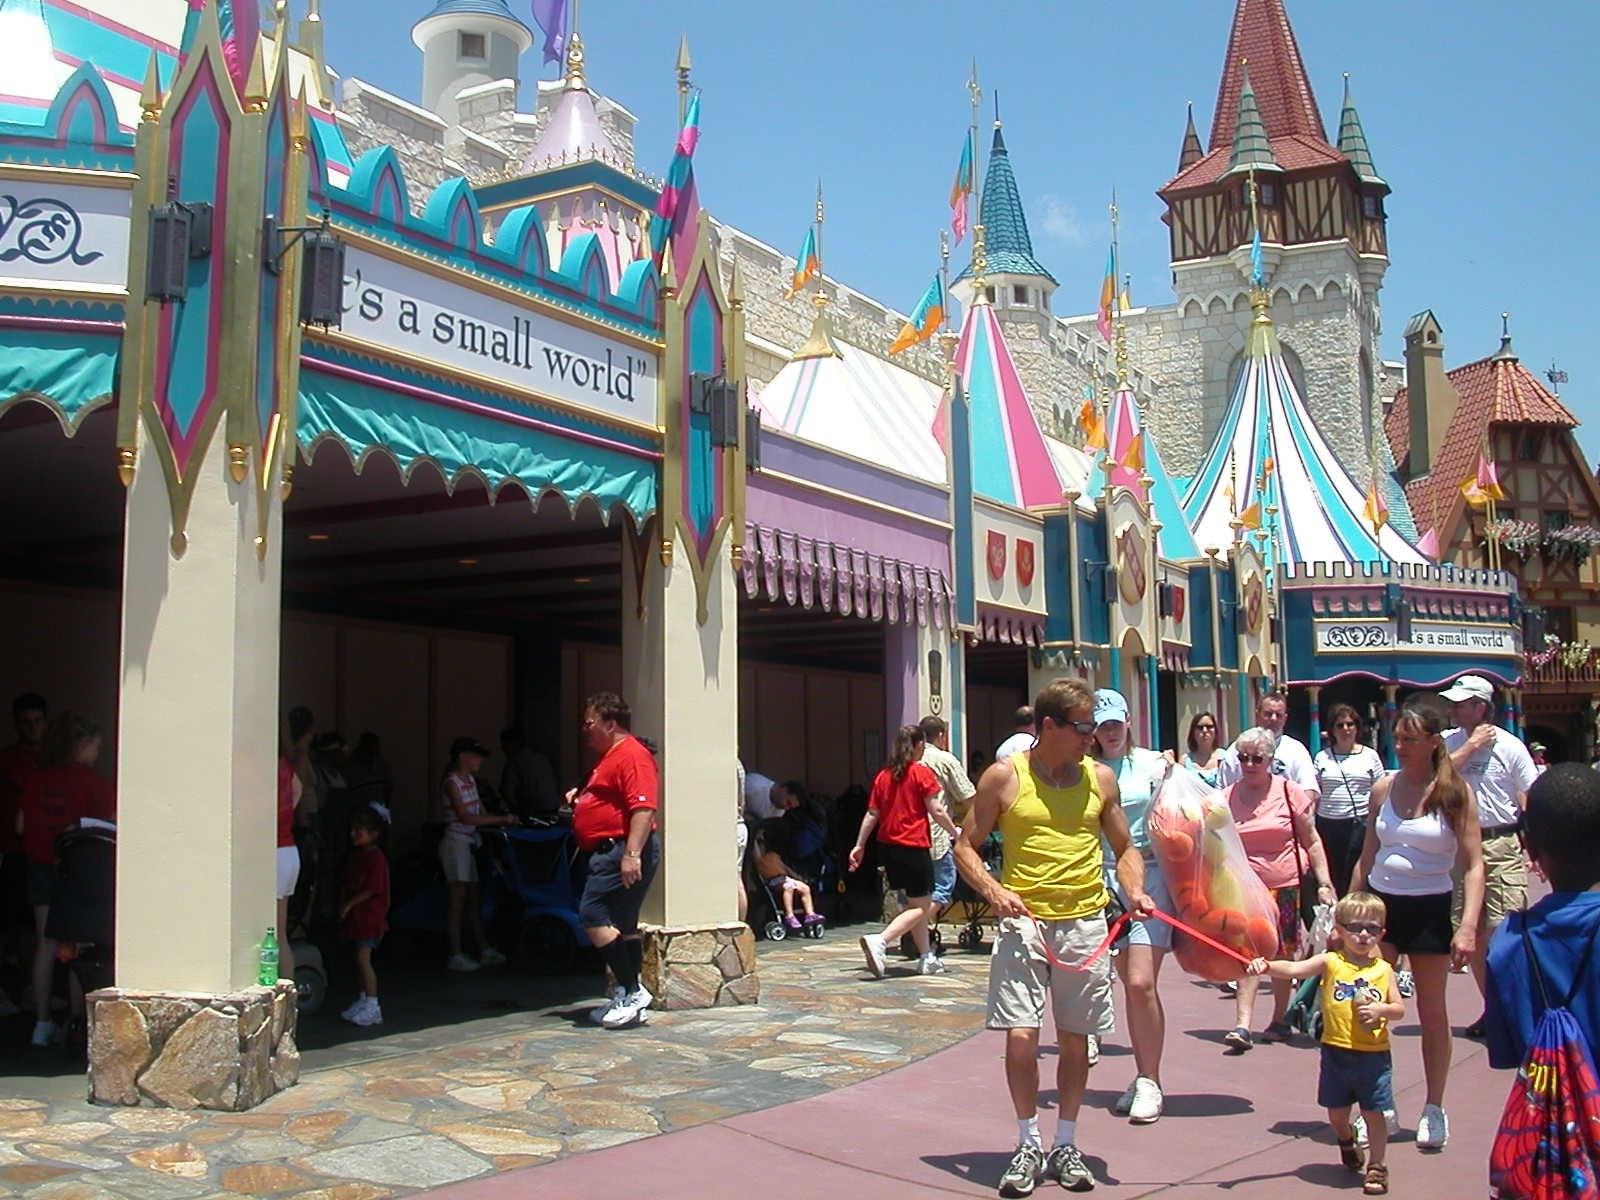 Small World closed for refurbishment